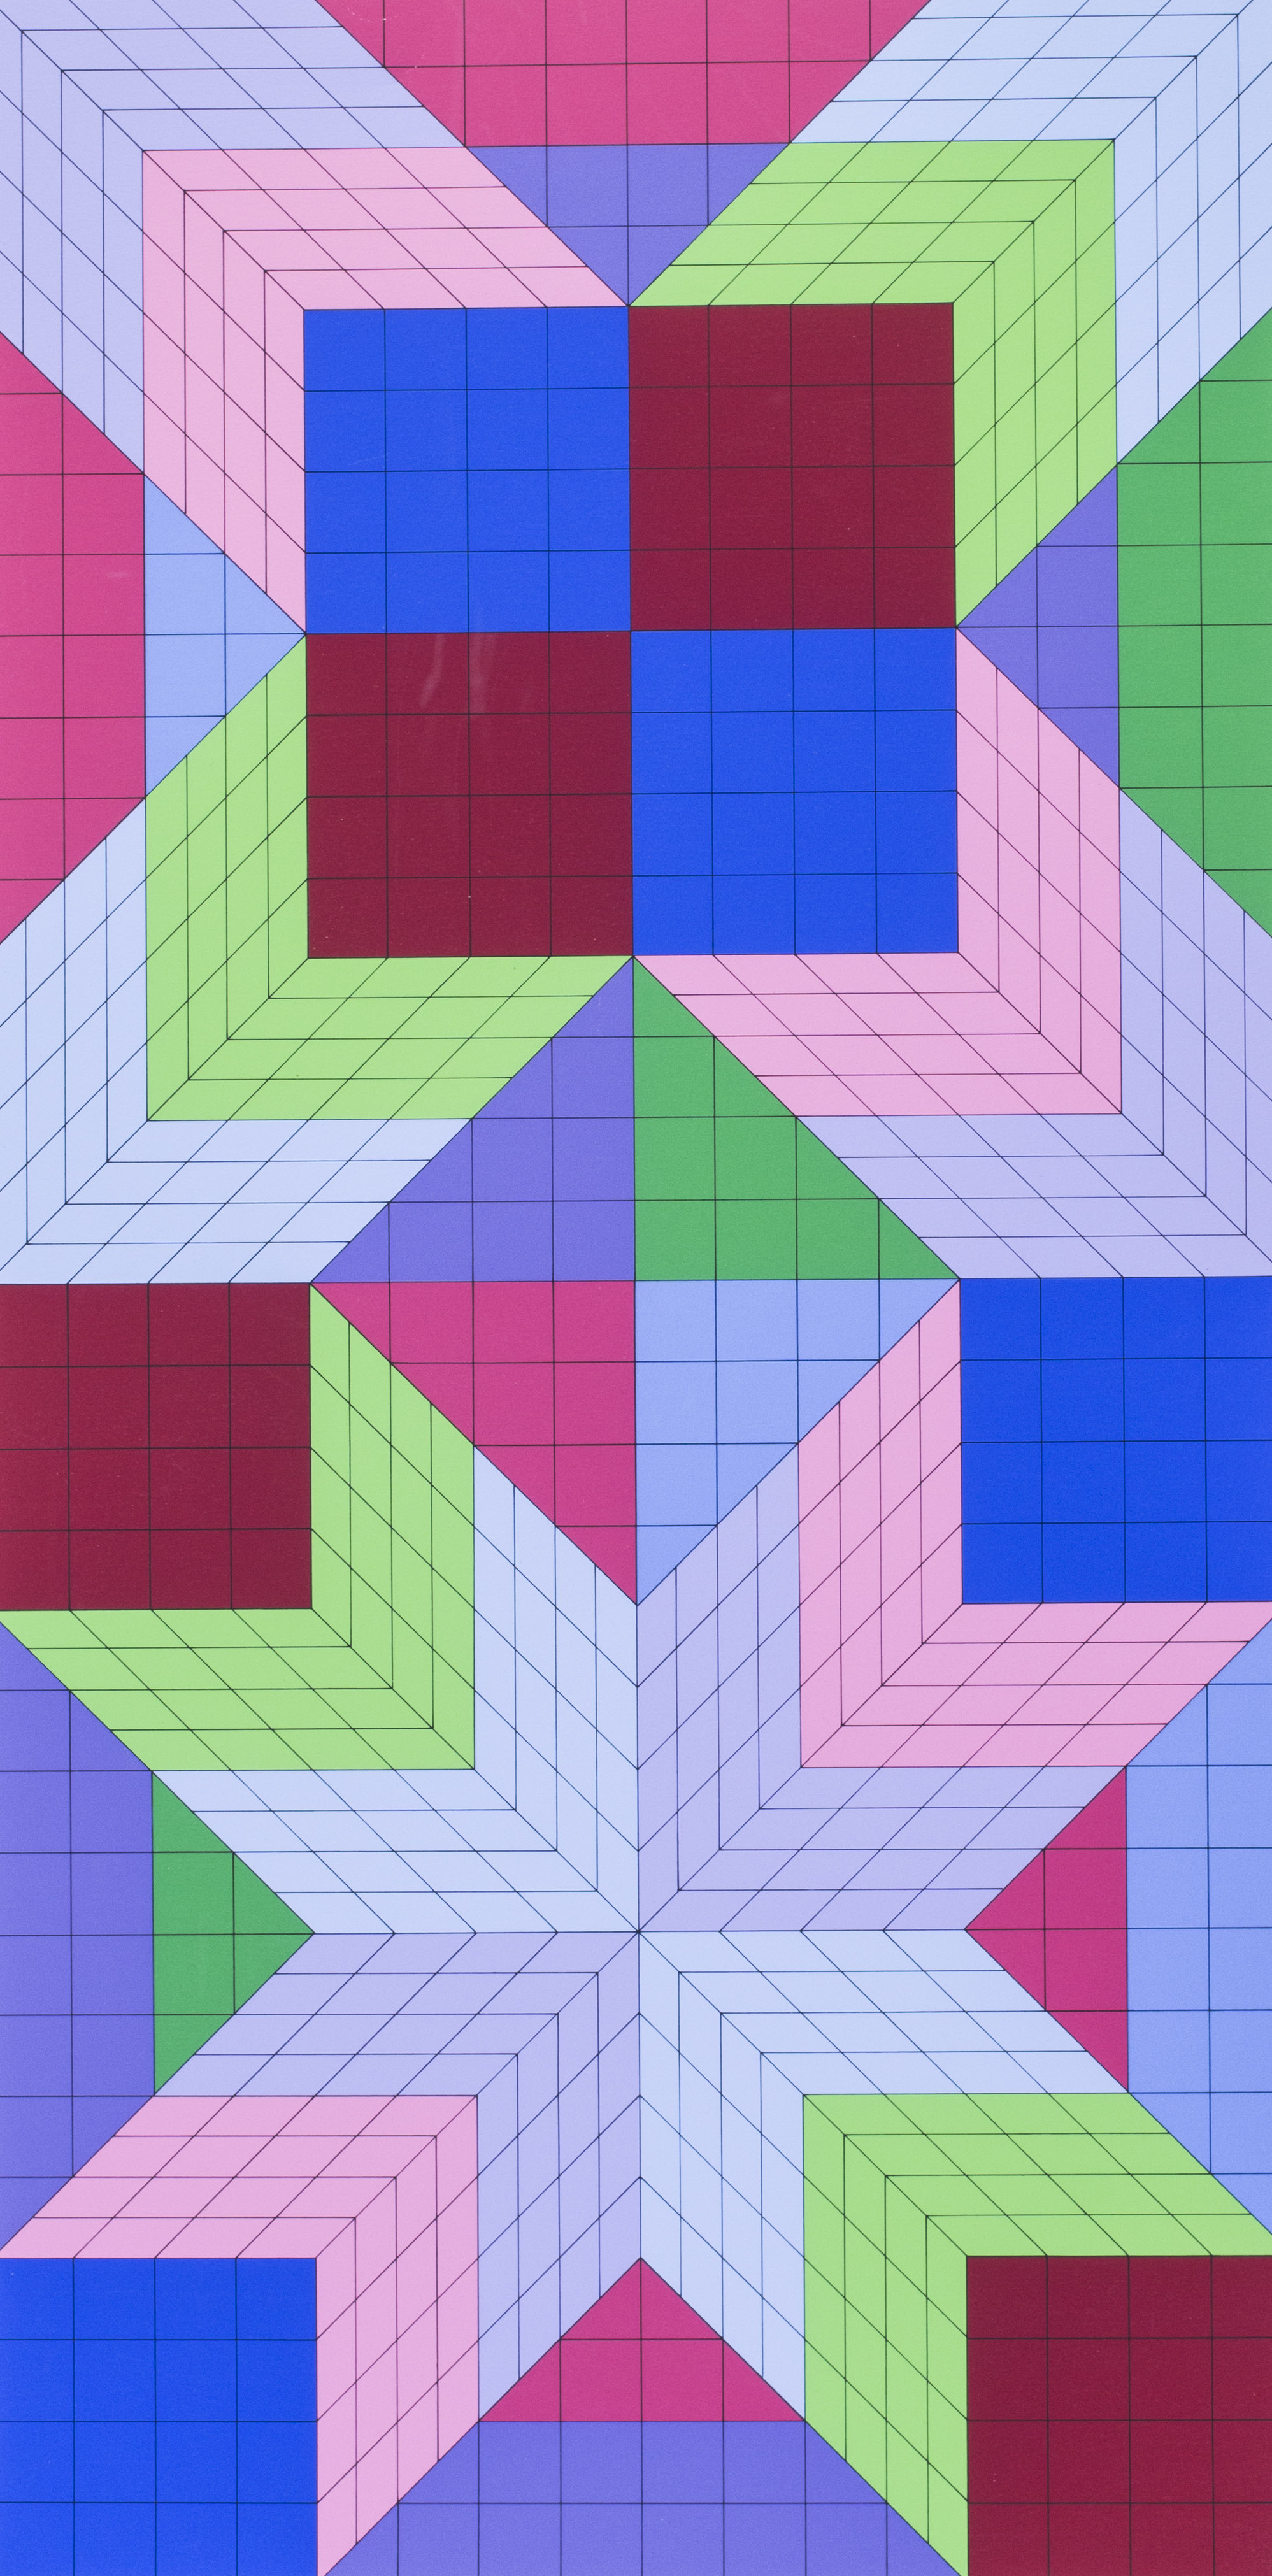 Victor Vasarely   Door, 1982   Numbered 'E.A. 7/9' (lower left) and signed Vasarely (lower right)  Artist's proof Silkscreen print  43 x 23.1/2 in. (109.3 x 59.5 cm.) including margins   Price: £1,250